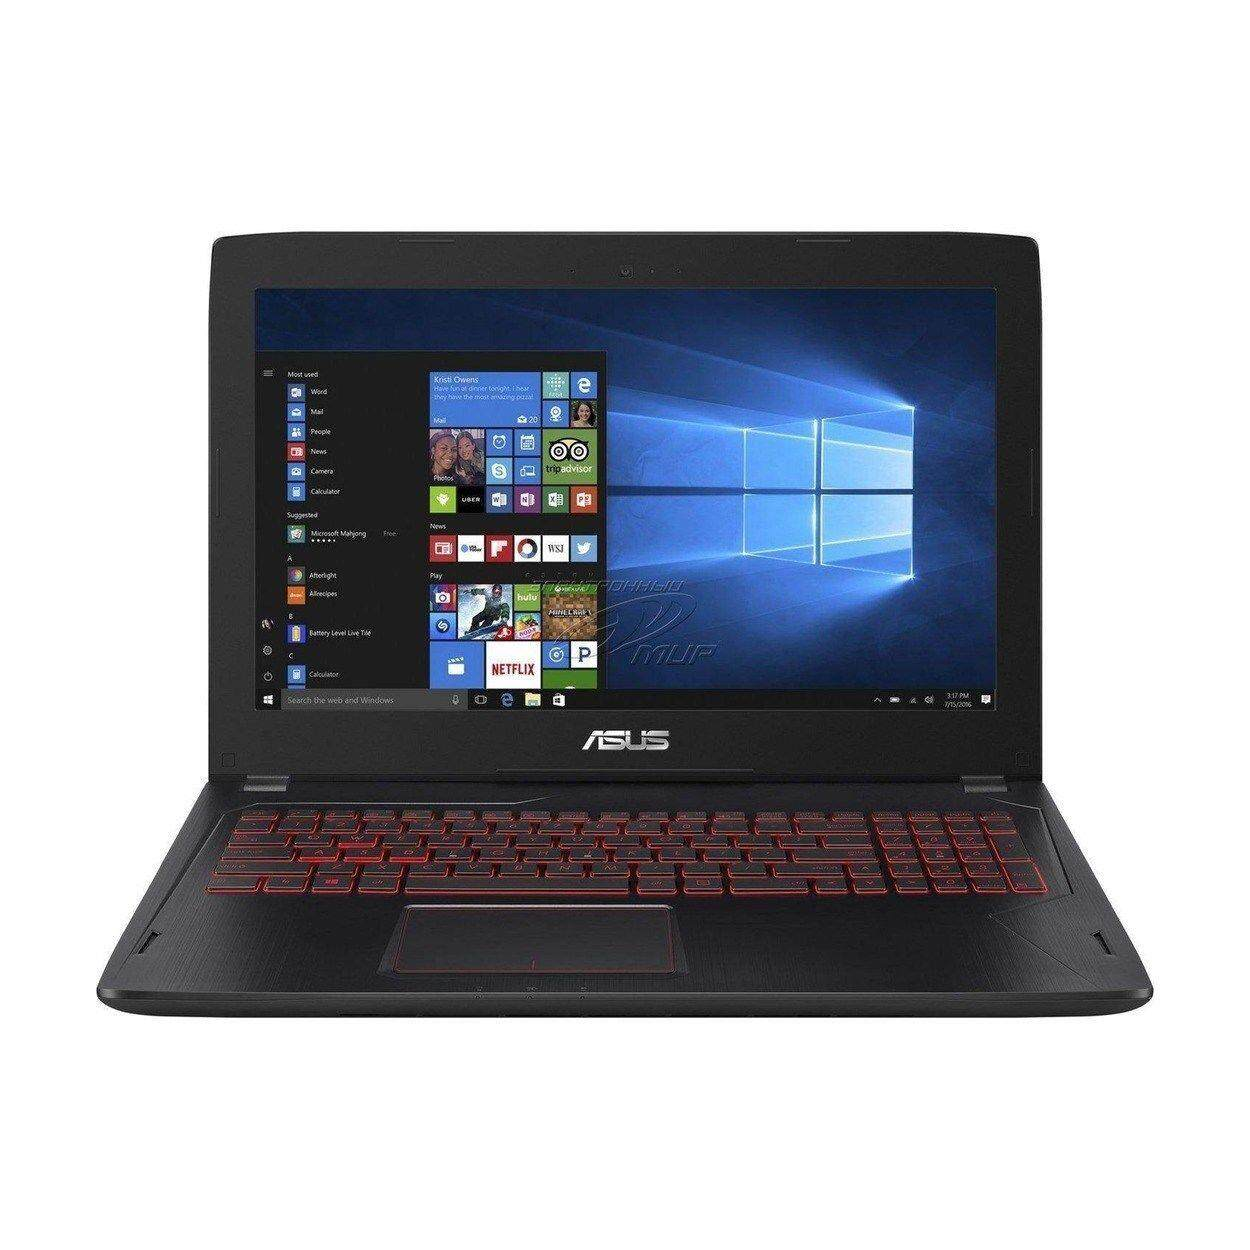 NEW ASUS i7 7700HQ 16GB GTX 1050 256GB + 1TB FHD Fast Gaming Laptop Malaysia